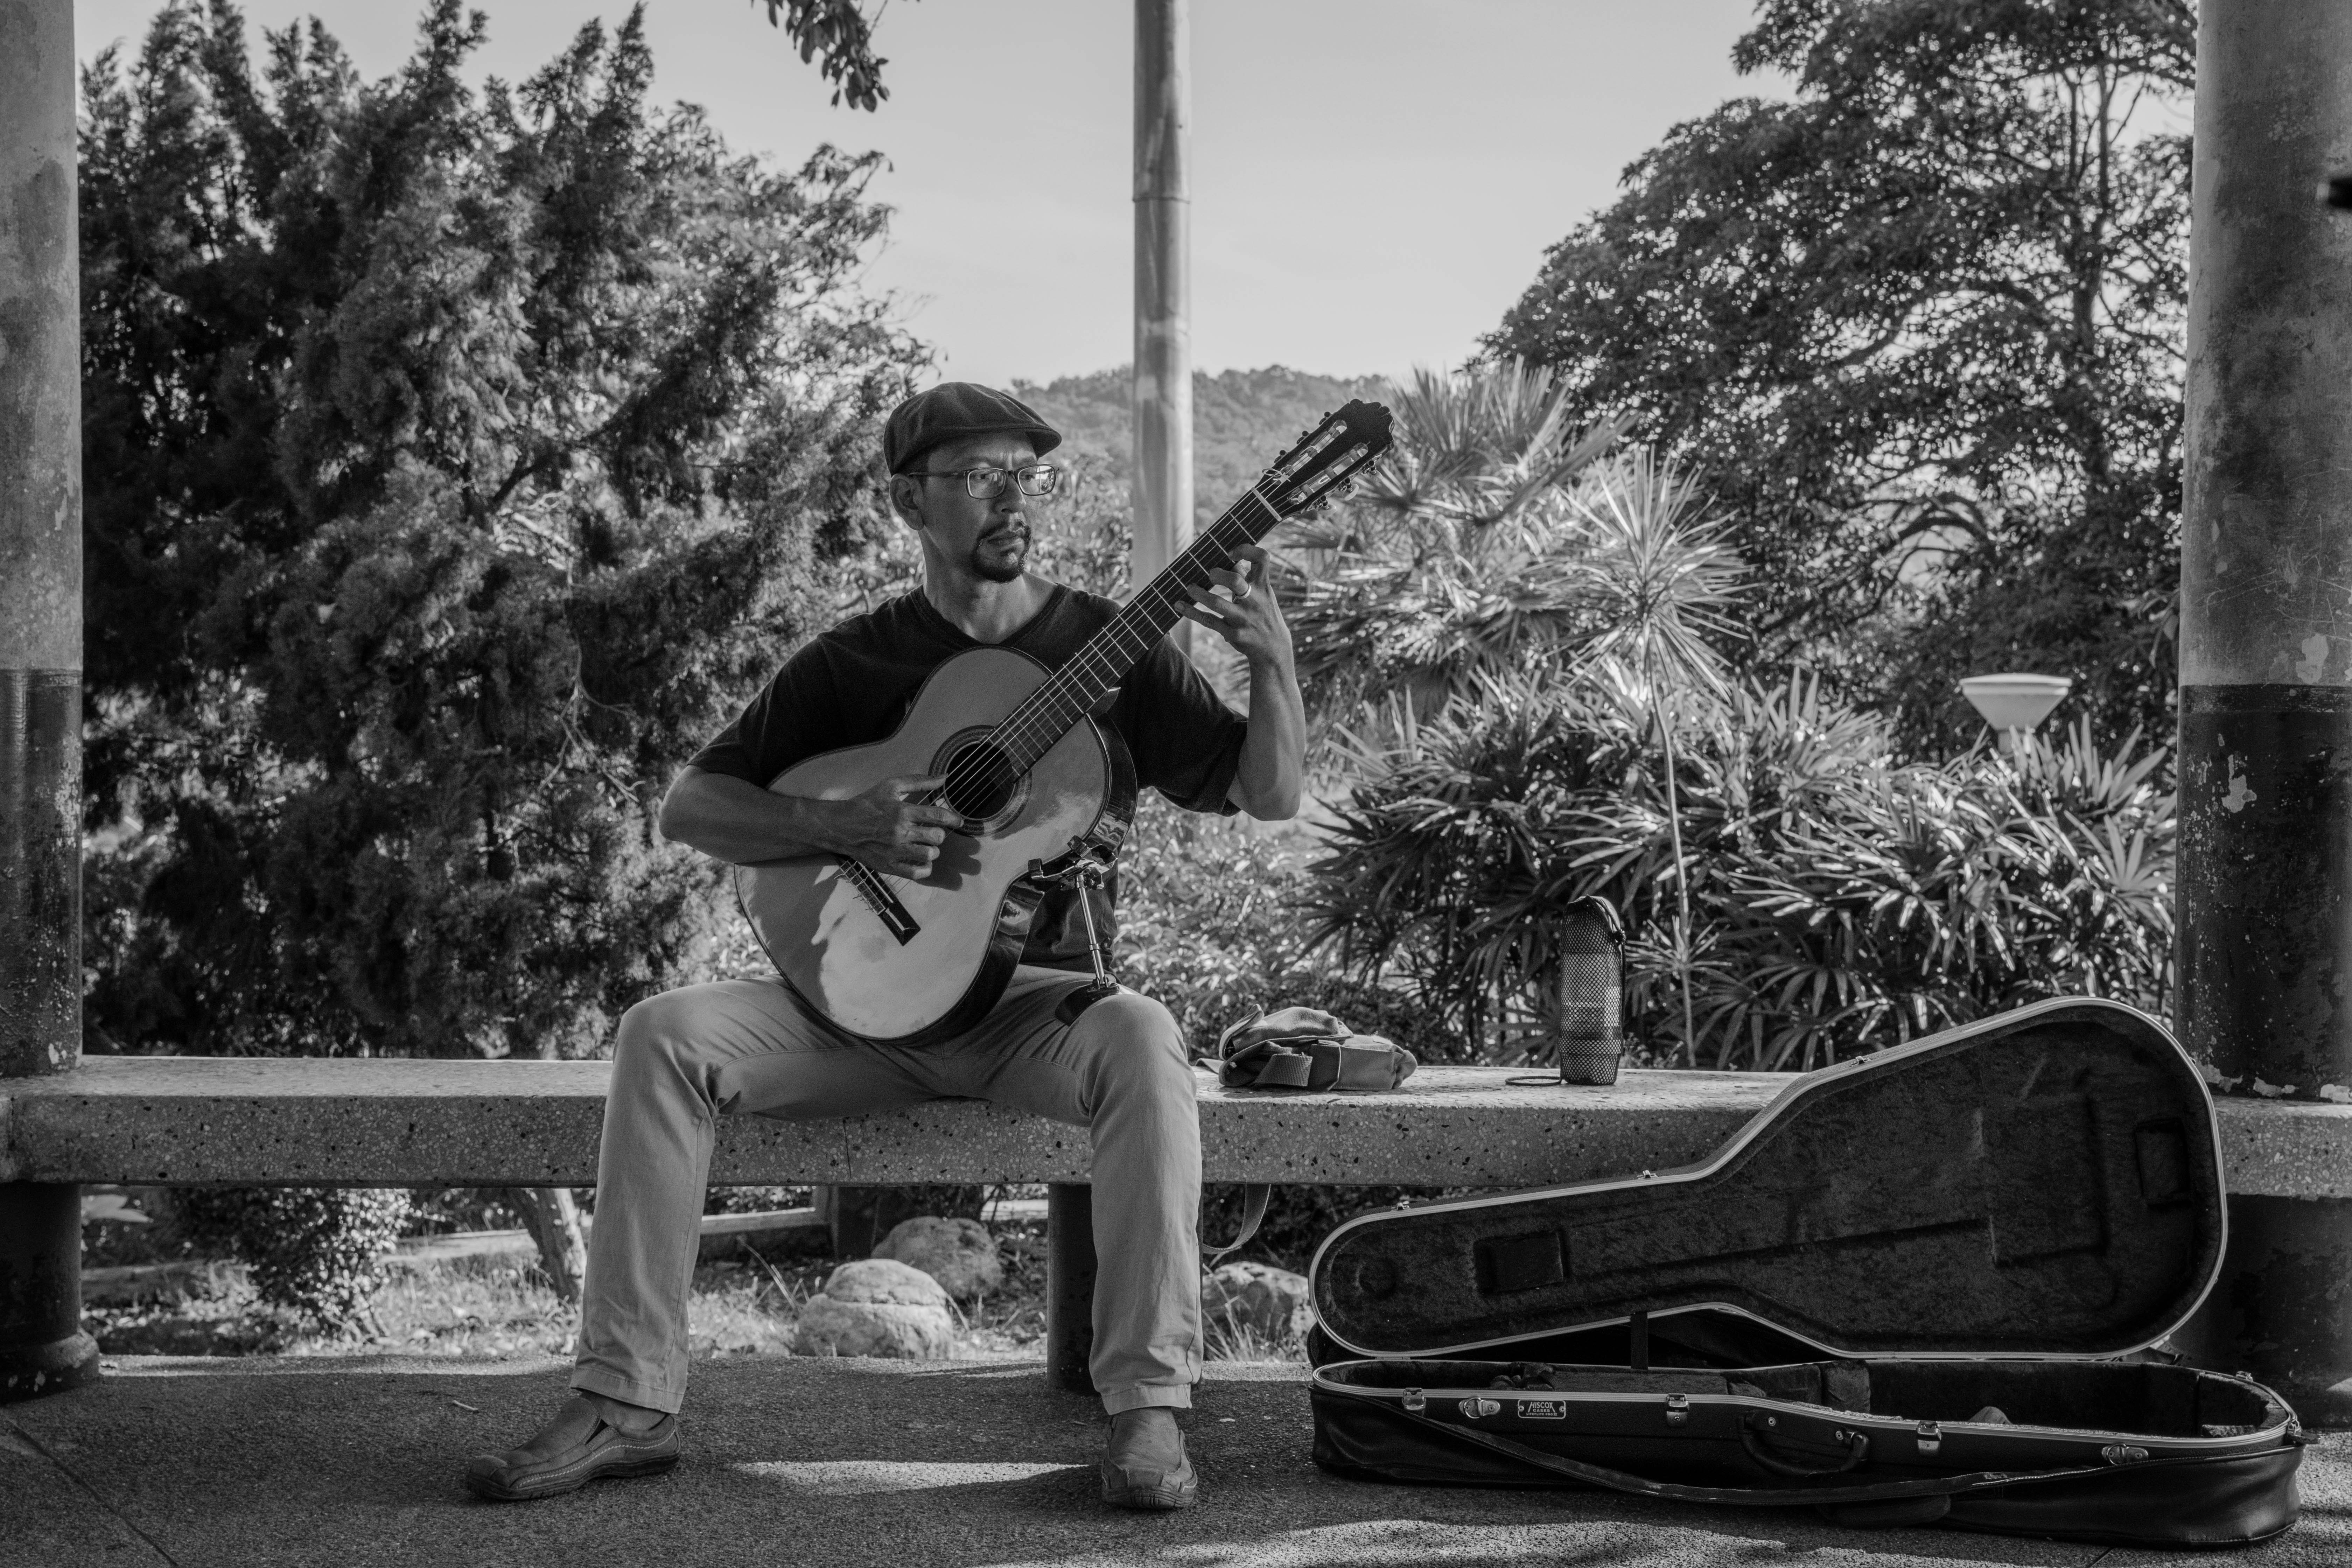 grayscale photography of man playing classic guiar